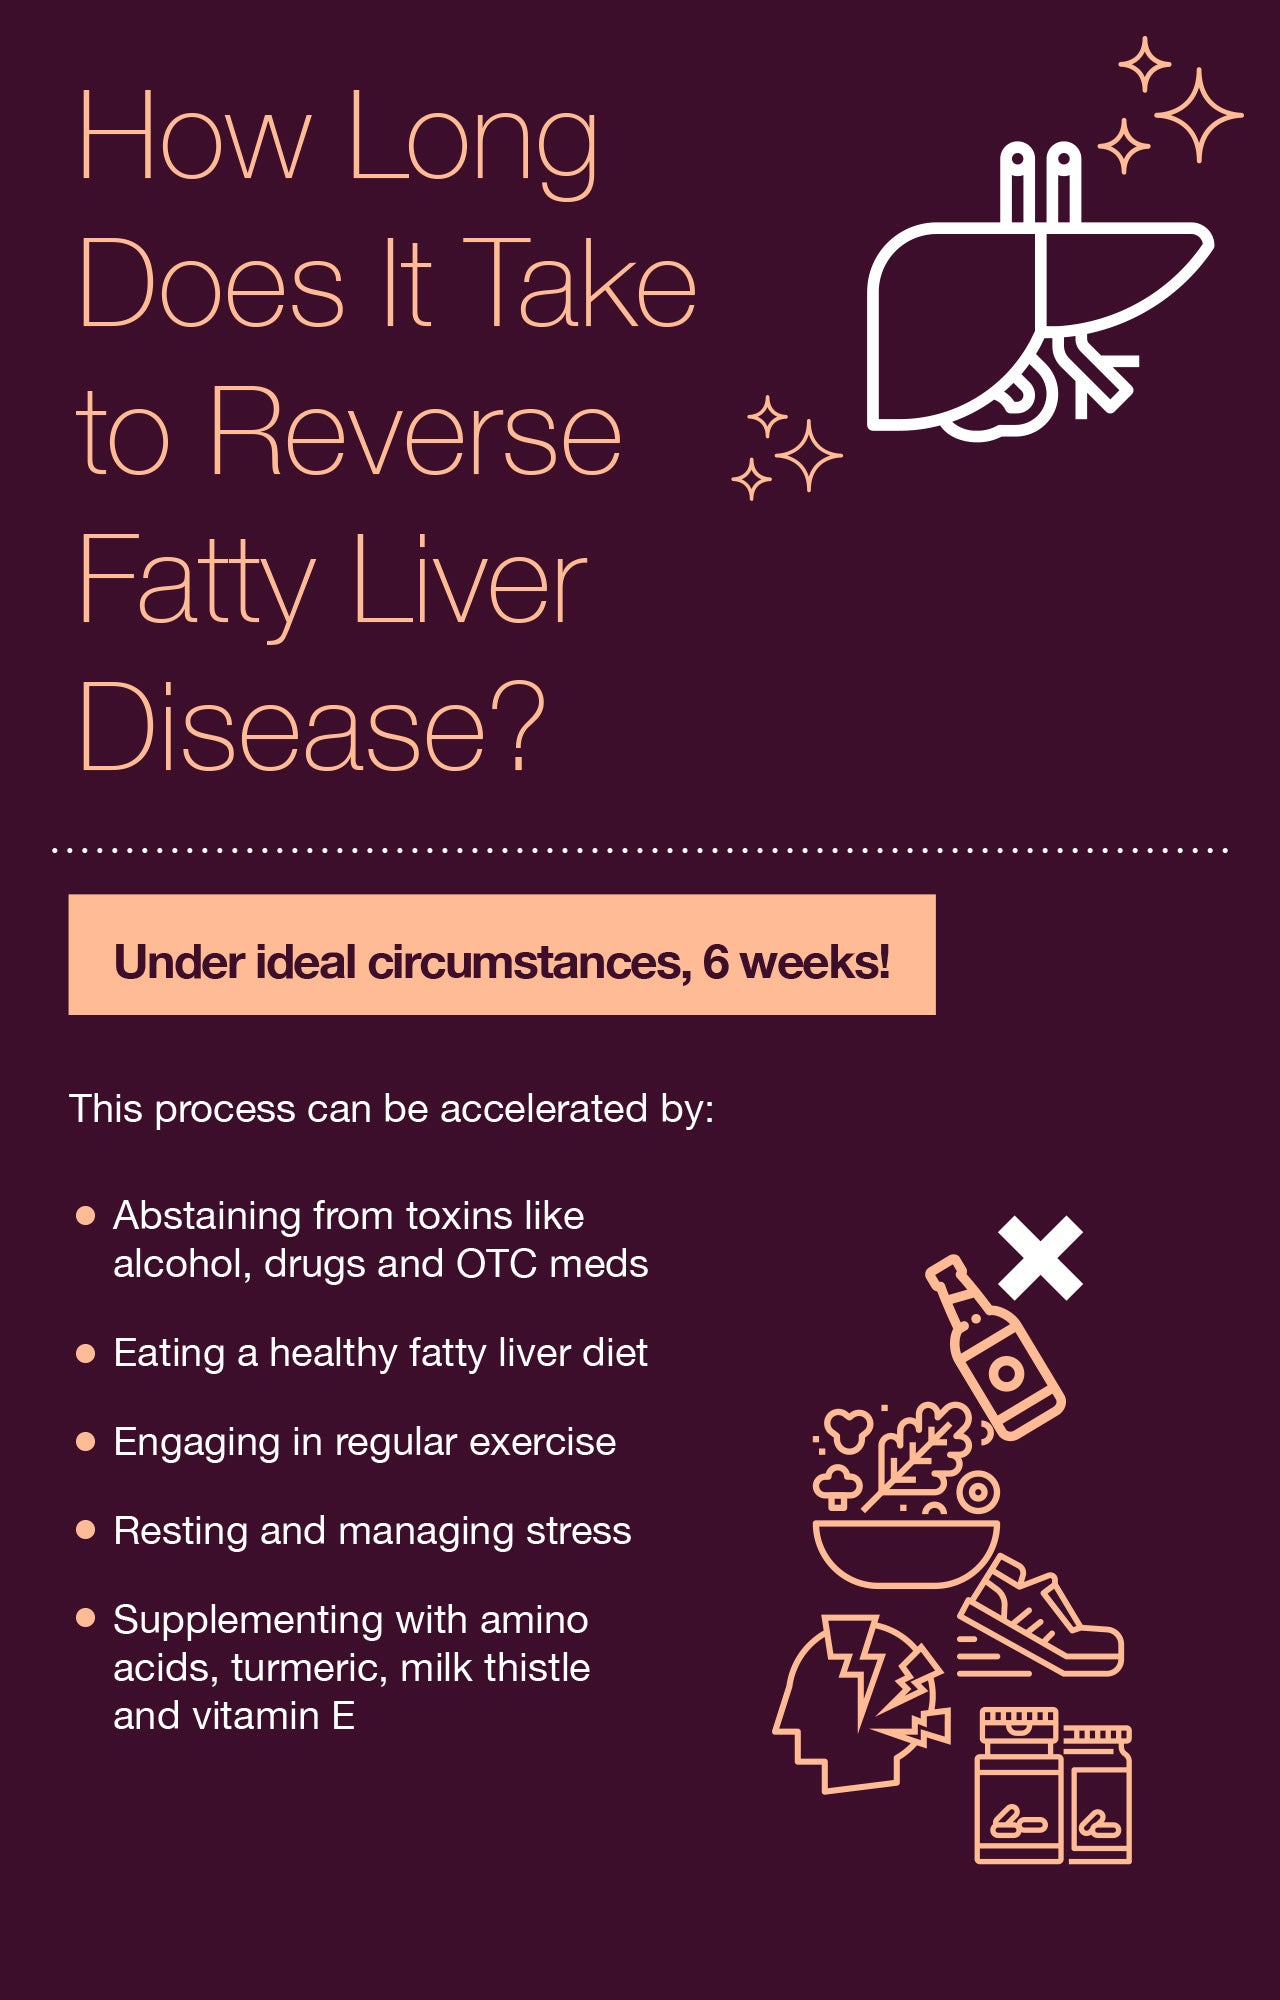 How Long Does It Take to Reverse Fatty Liver Disease?